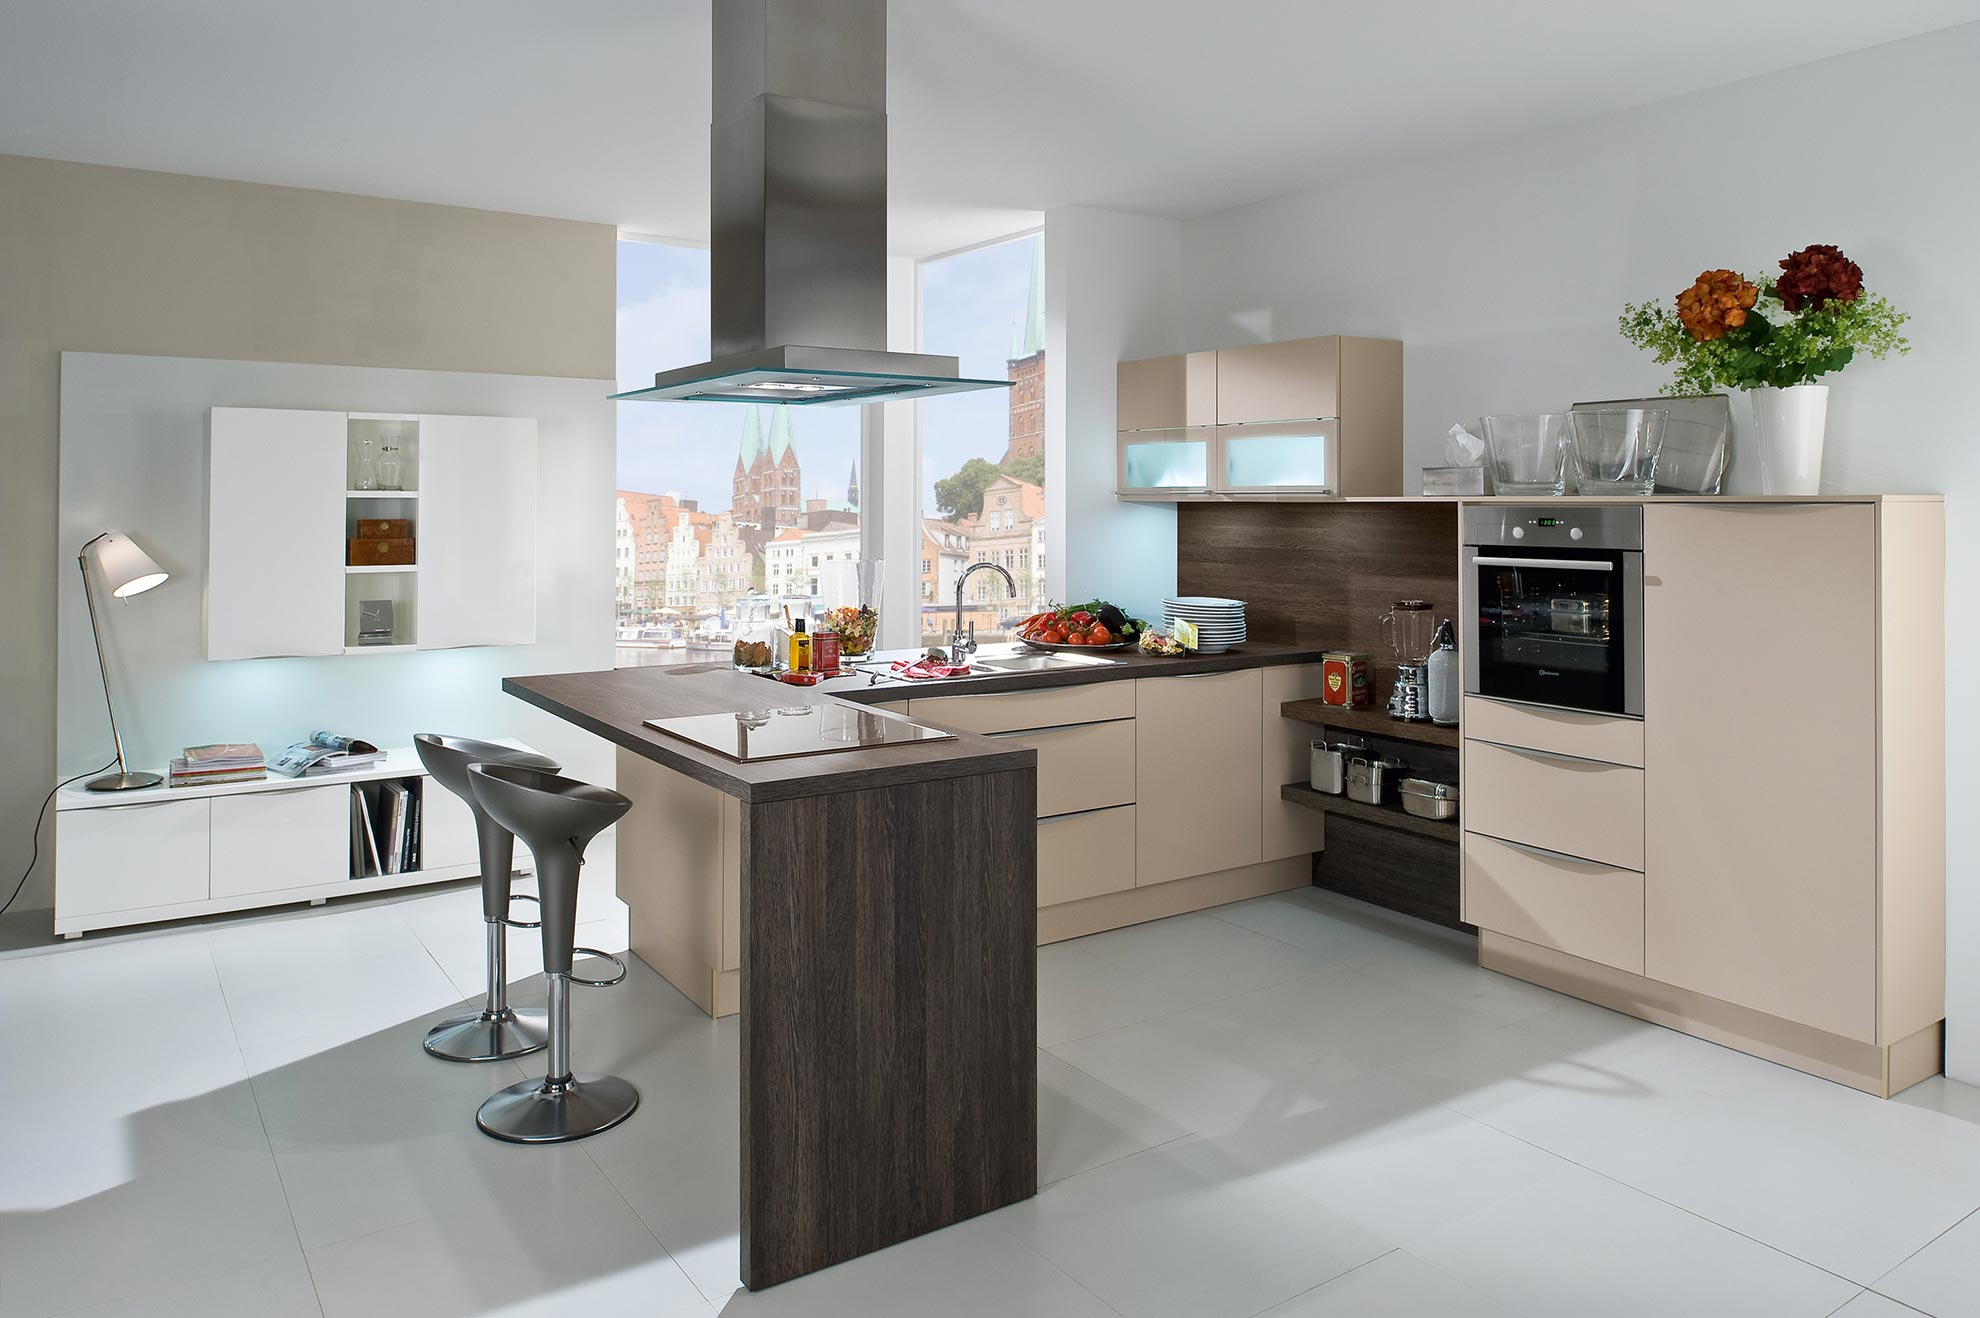 Kitchens bedford bedfordshire fitted kitchen installation for Kitchen pictures